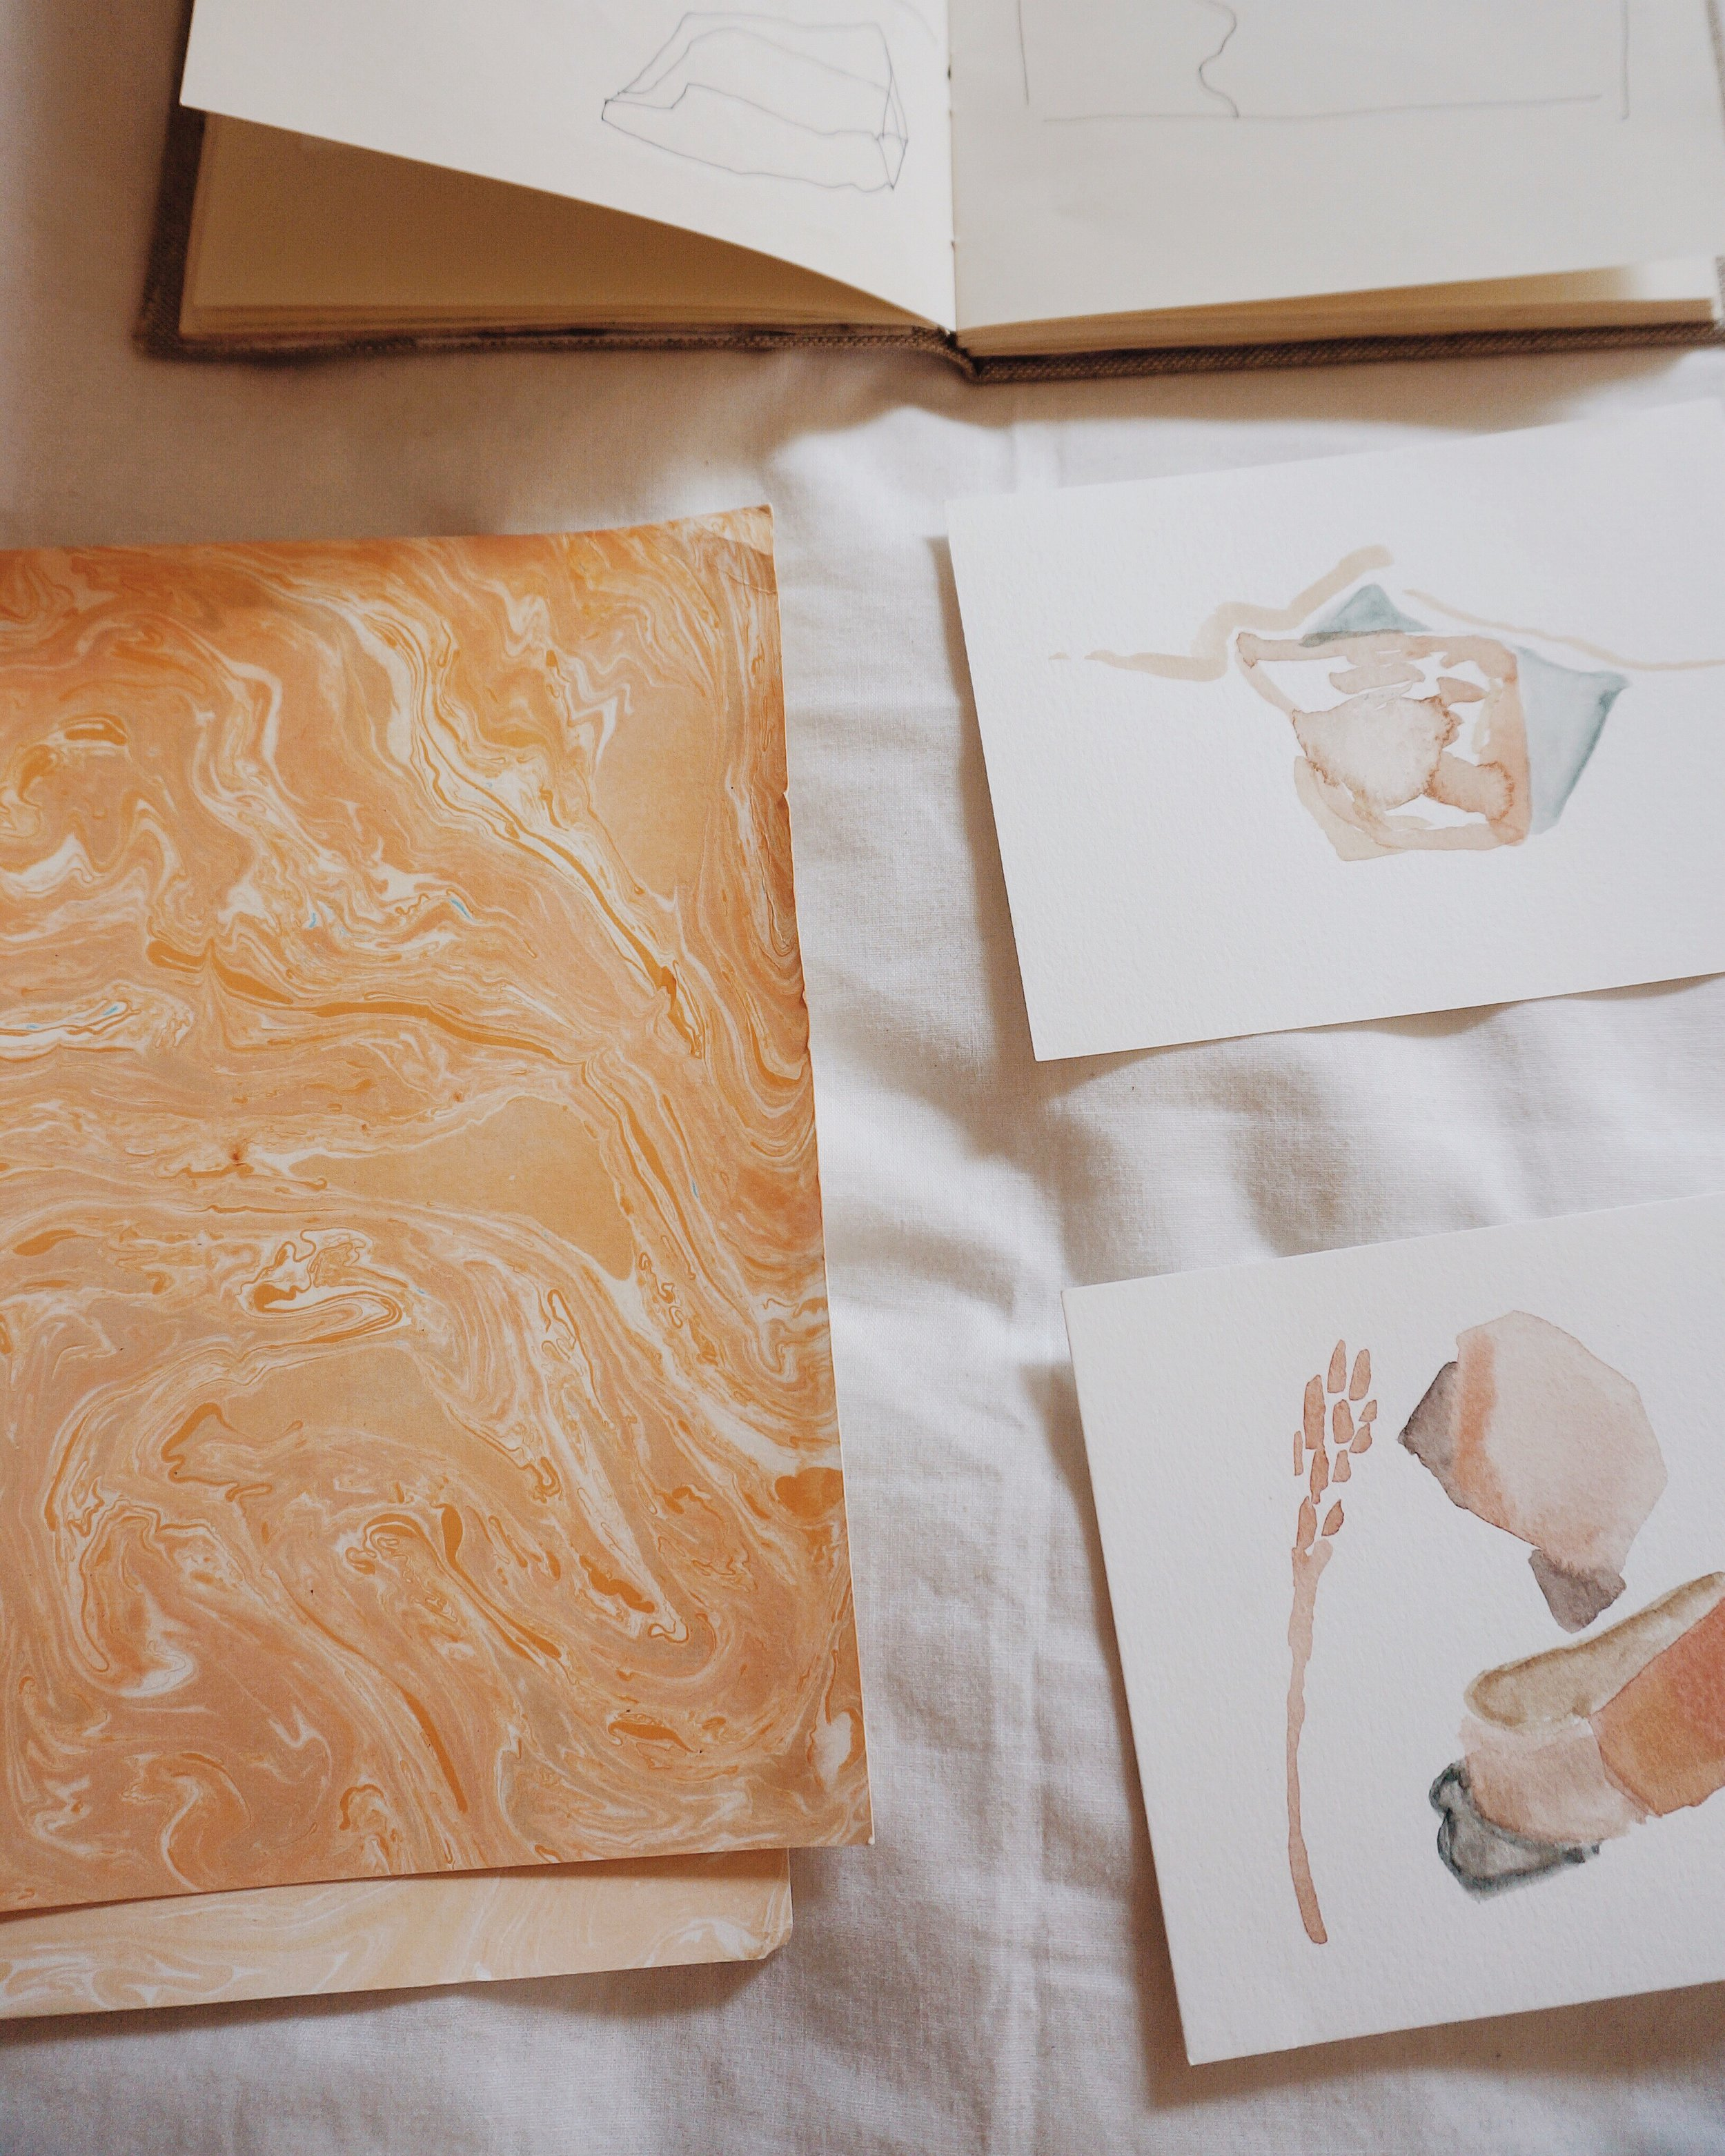 left, marbled paper from moab. right, sketches from a hike at rocky mountain national park.